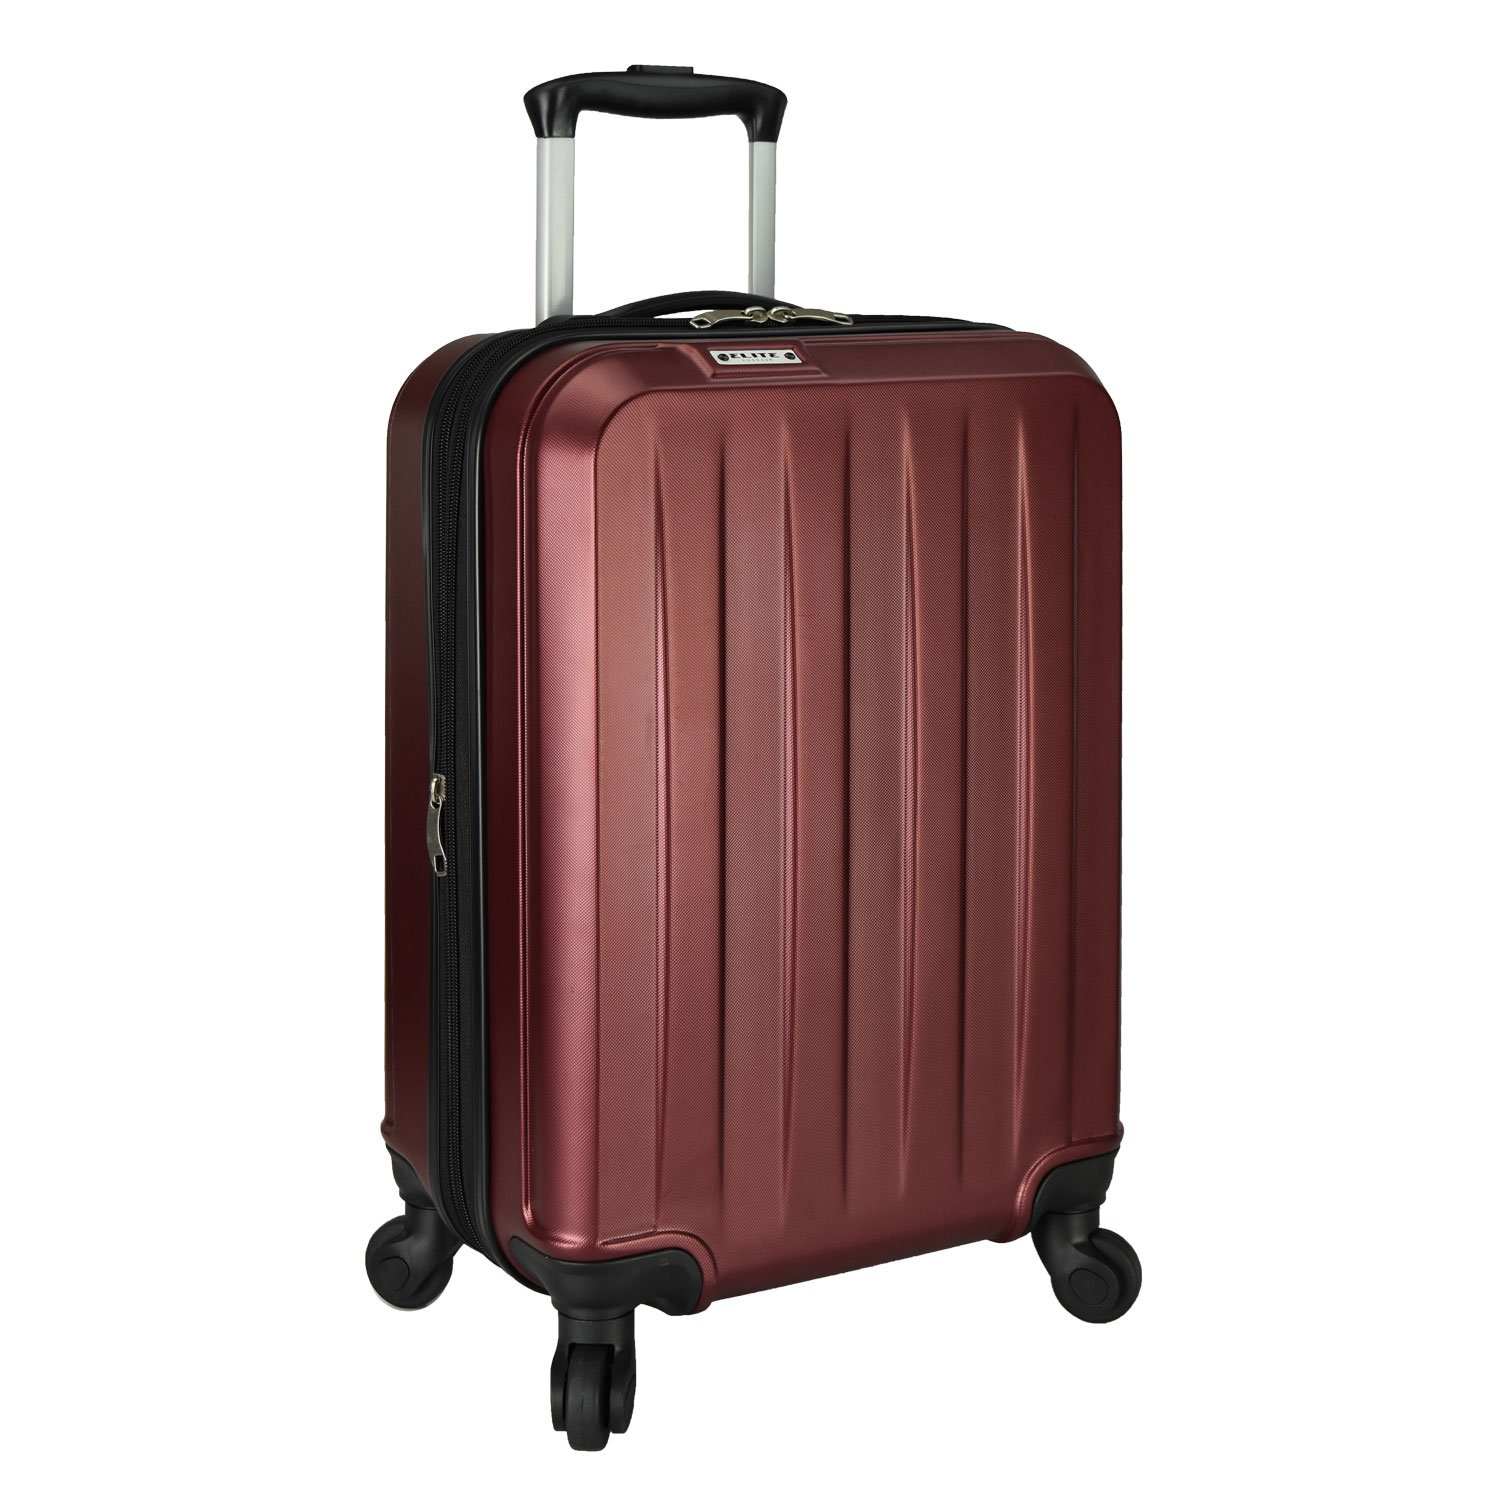 Elite Expandable Elite Expandable Carry-on Spinner, Bagage Cabine, Noir (Noir) -  EL06051K Noir (Noir) -  EL06051K Travelers Choice